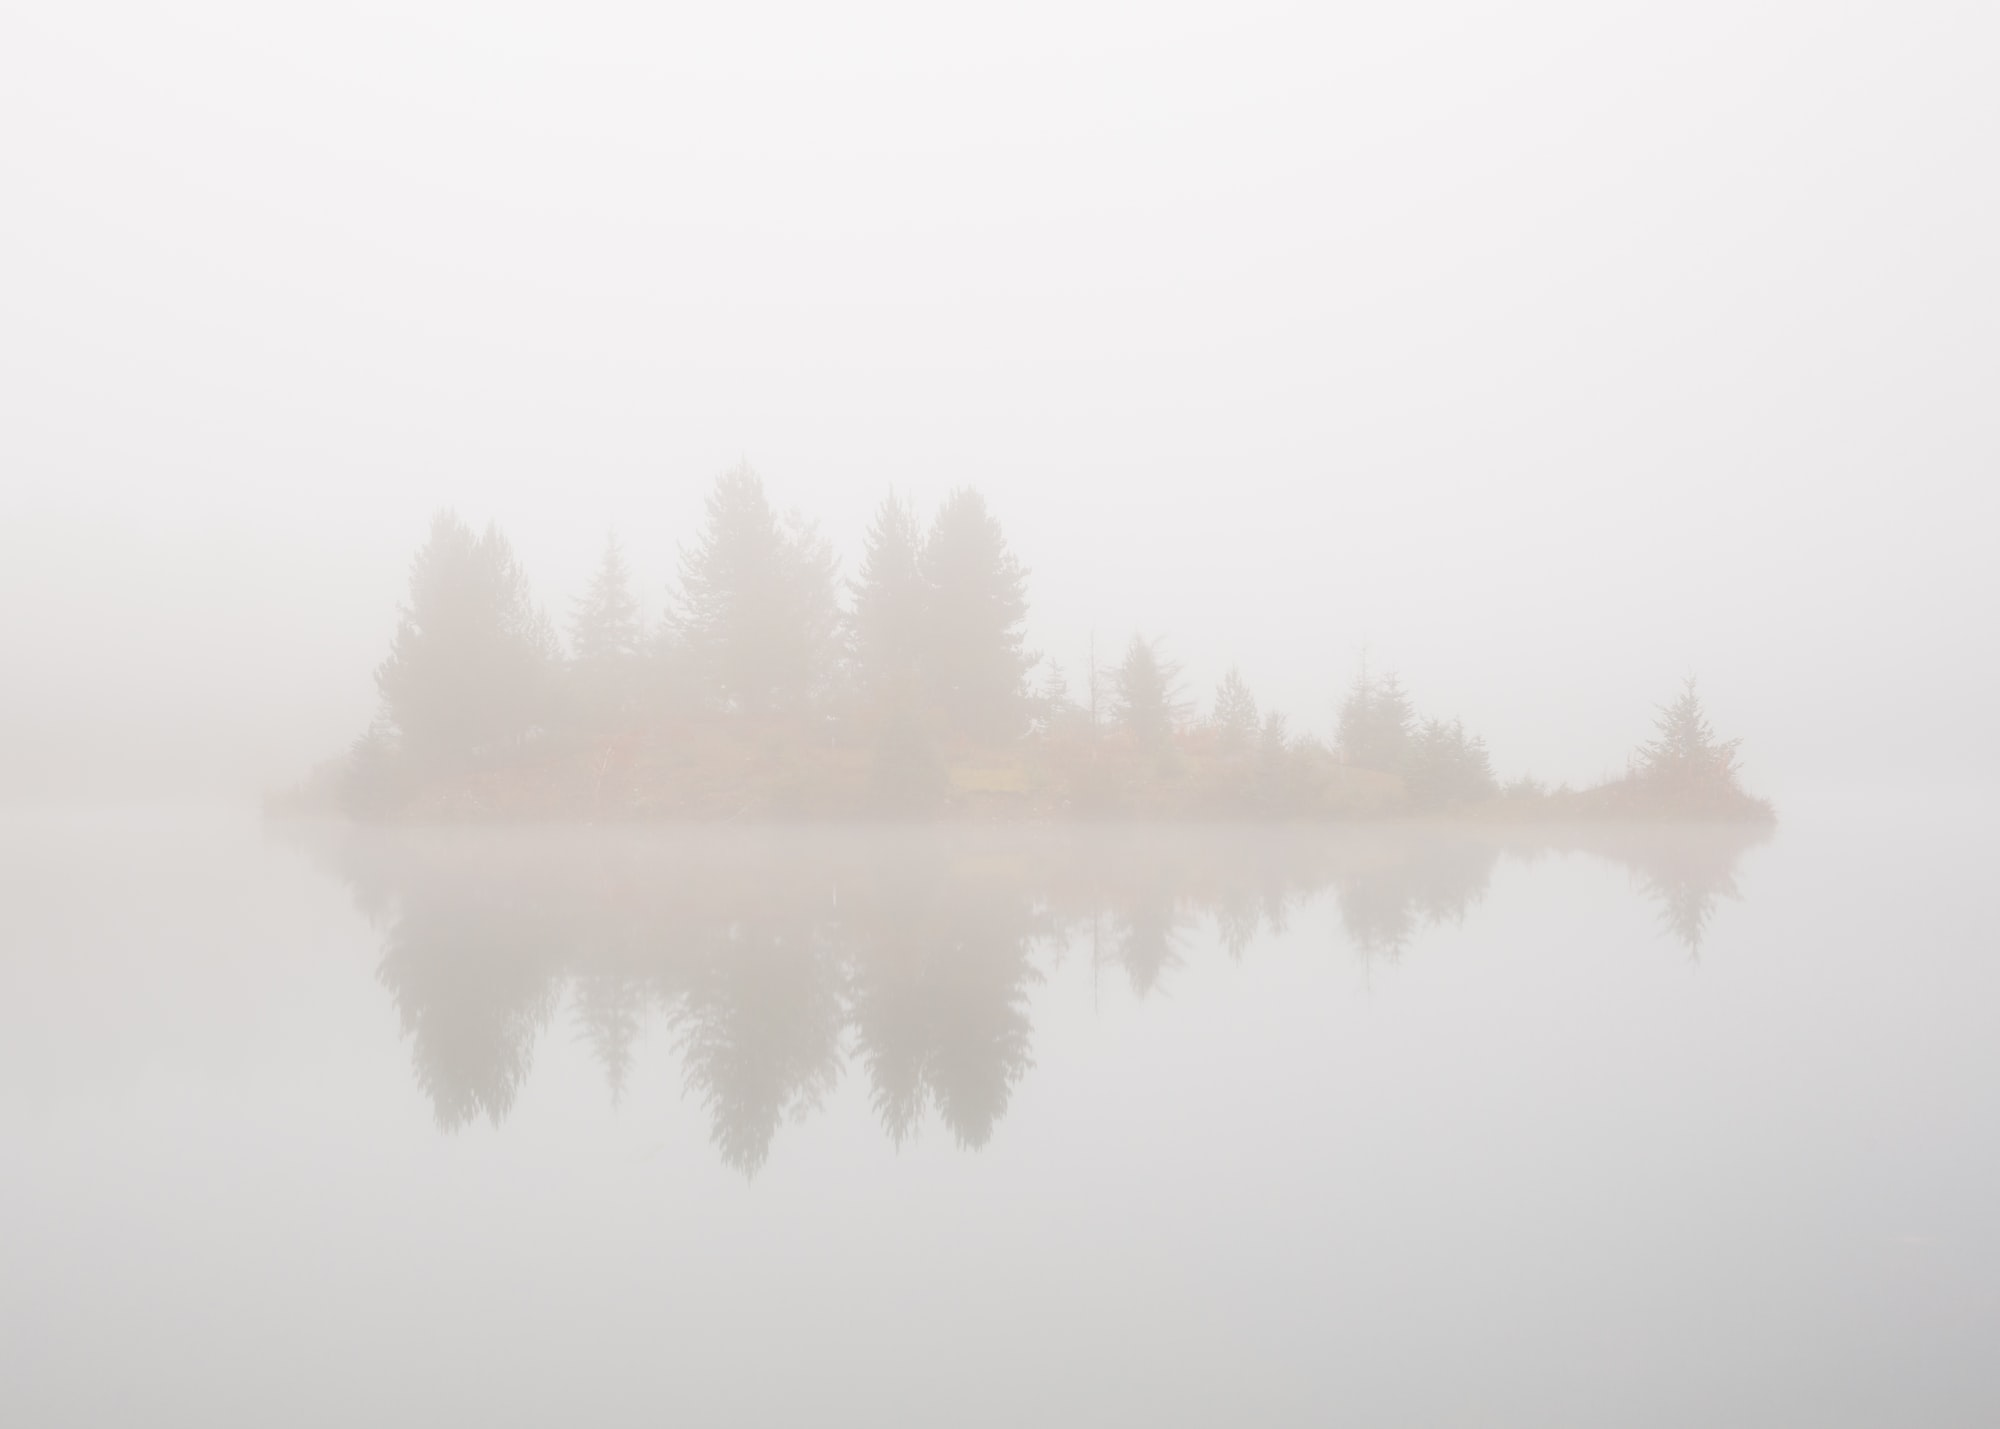 Such a foggy day at Gold Creek Pond in Washington. Normally you can see mountains behind this little island.